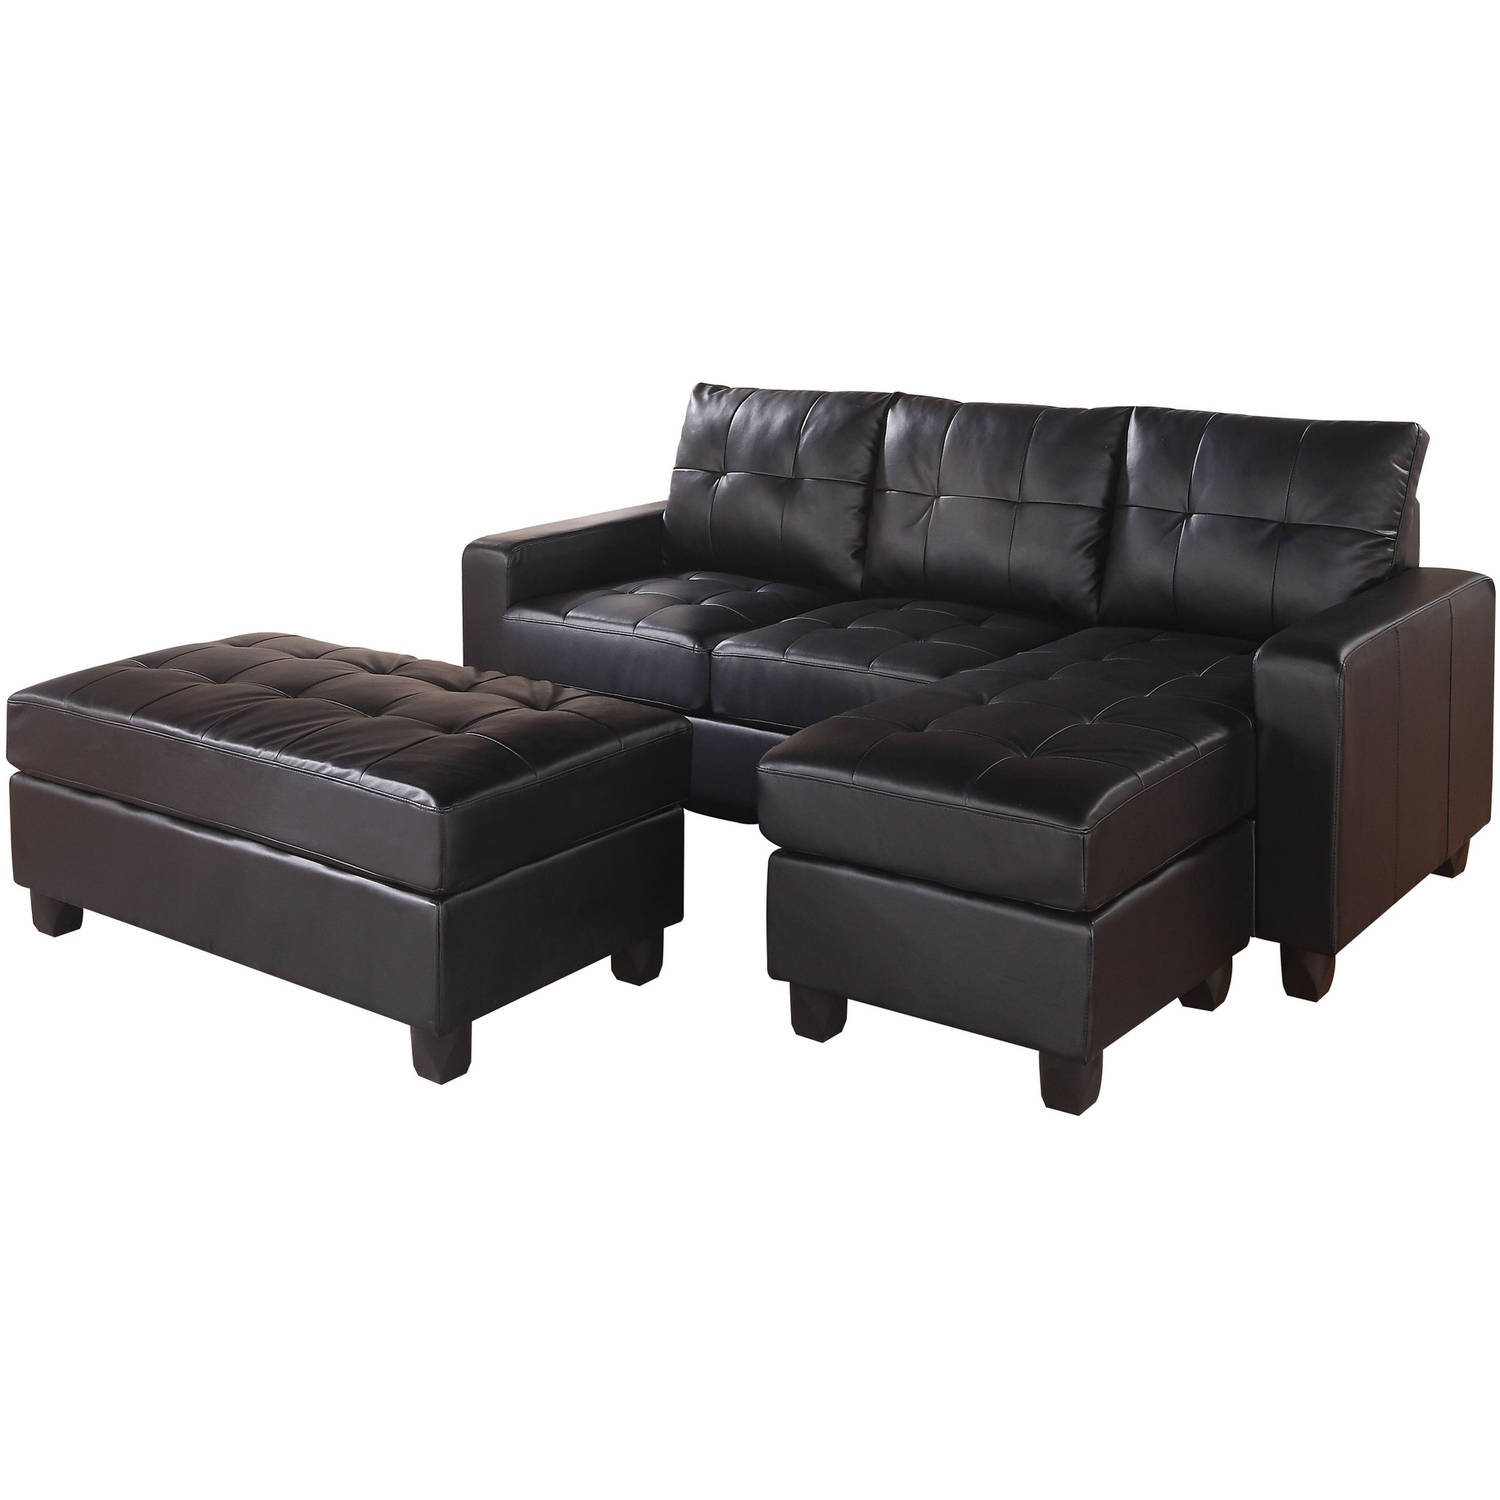 Acme Lyssa Reversible Chaise Sectional and Ottoman Bonded Leather Match Multiple Colors